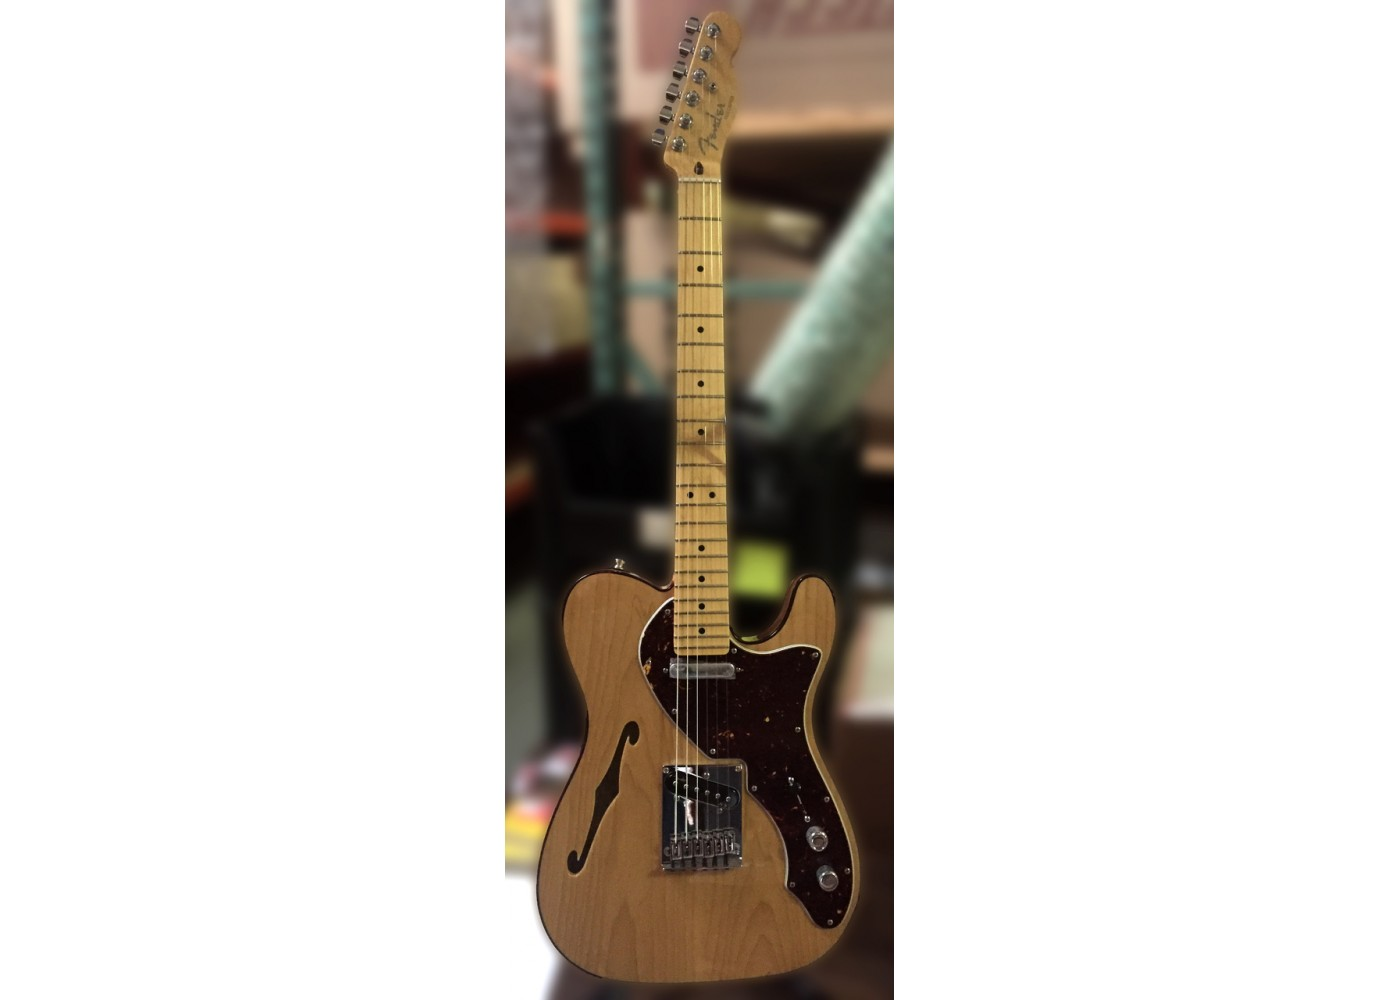 world music supply american deluxe telecaster thinline maple fingerboard 3color sunburst. Black Bedroom Furniture Sets. Home Design Ideas